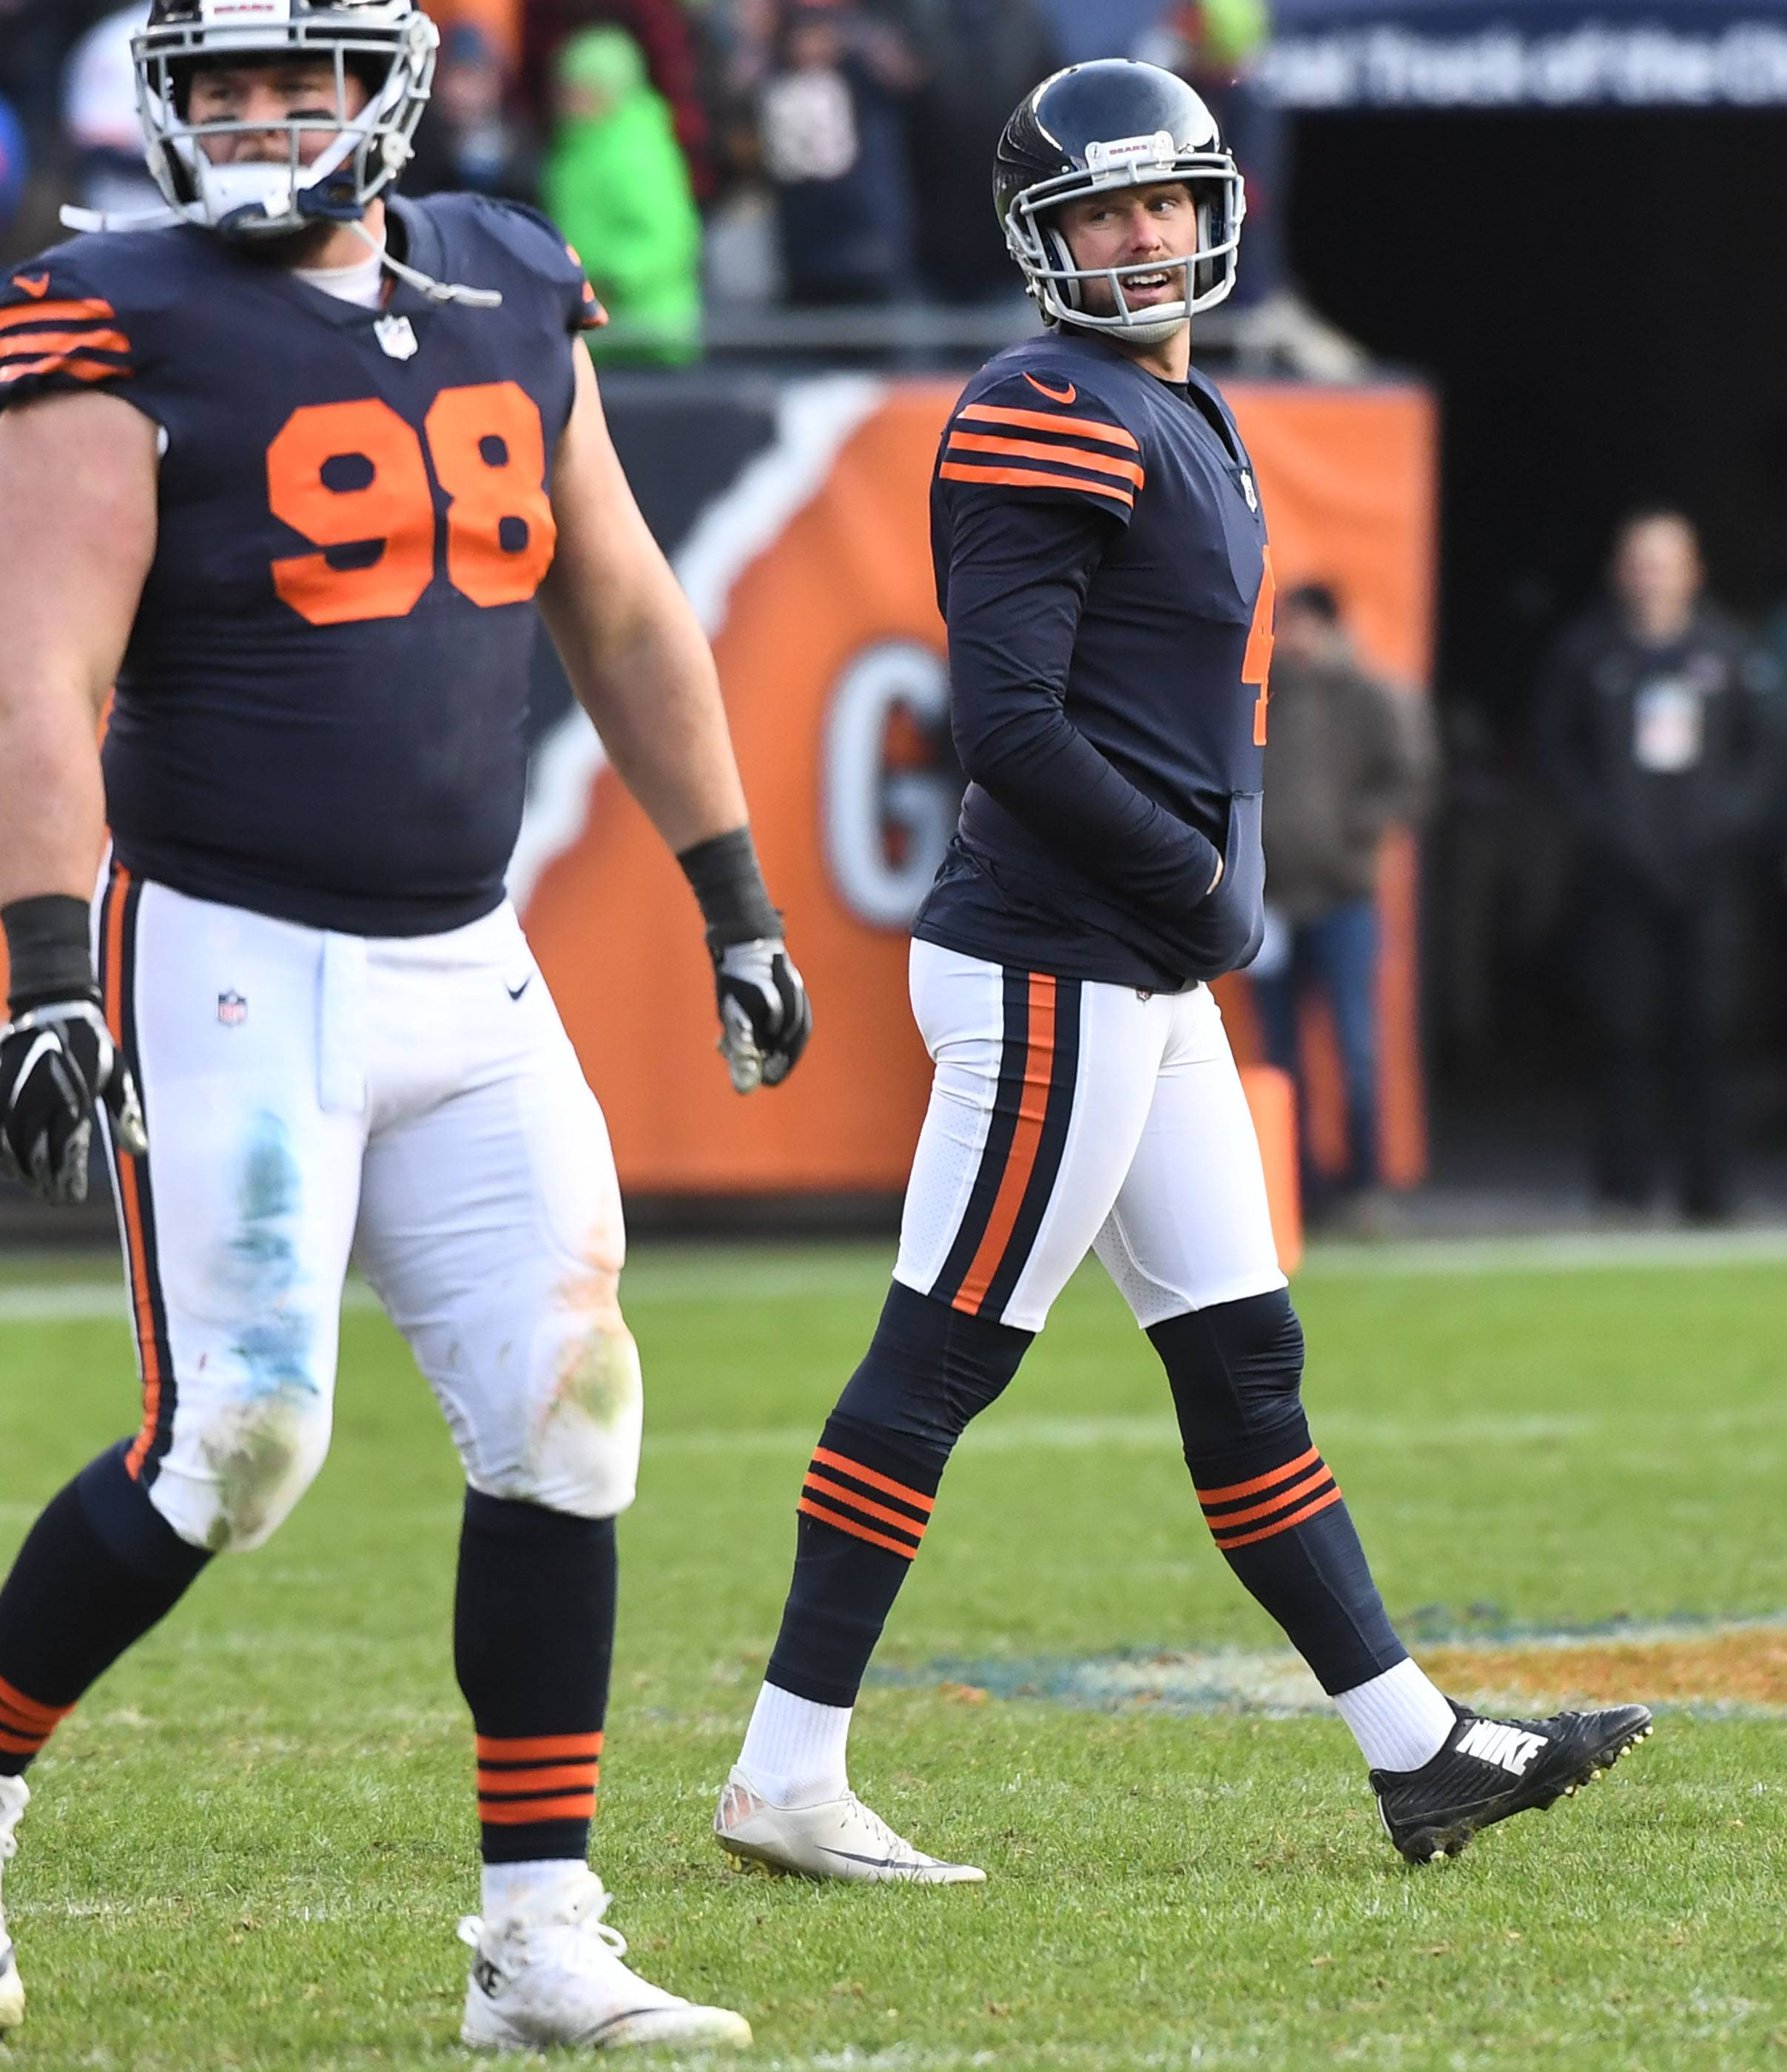 Chicago Bears coach Fox on Barth's missed FG: 'We will evaluate it'